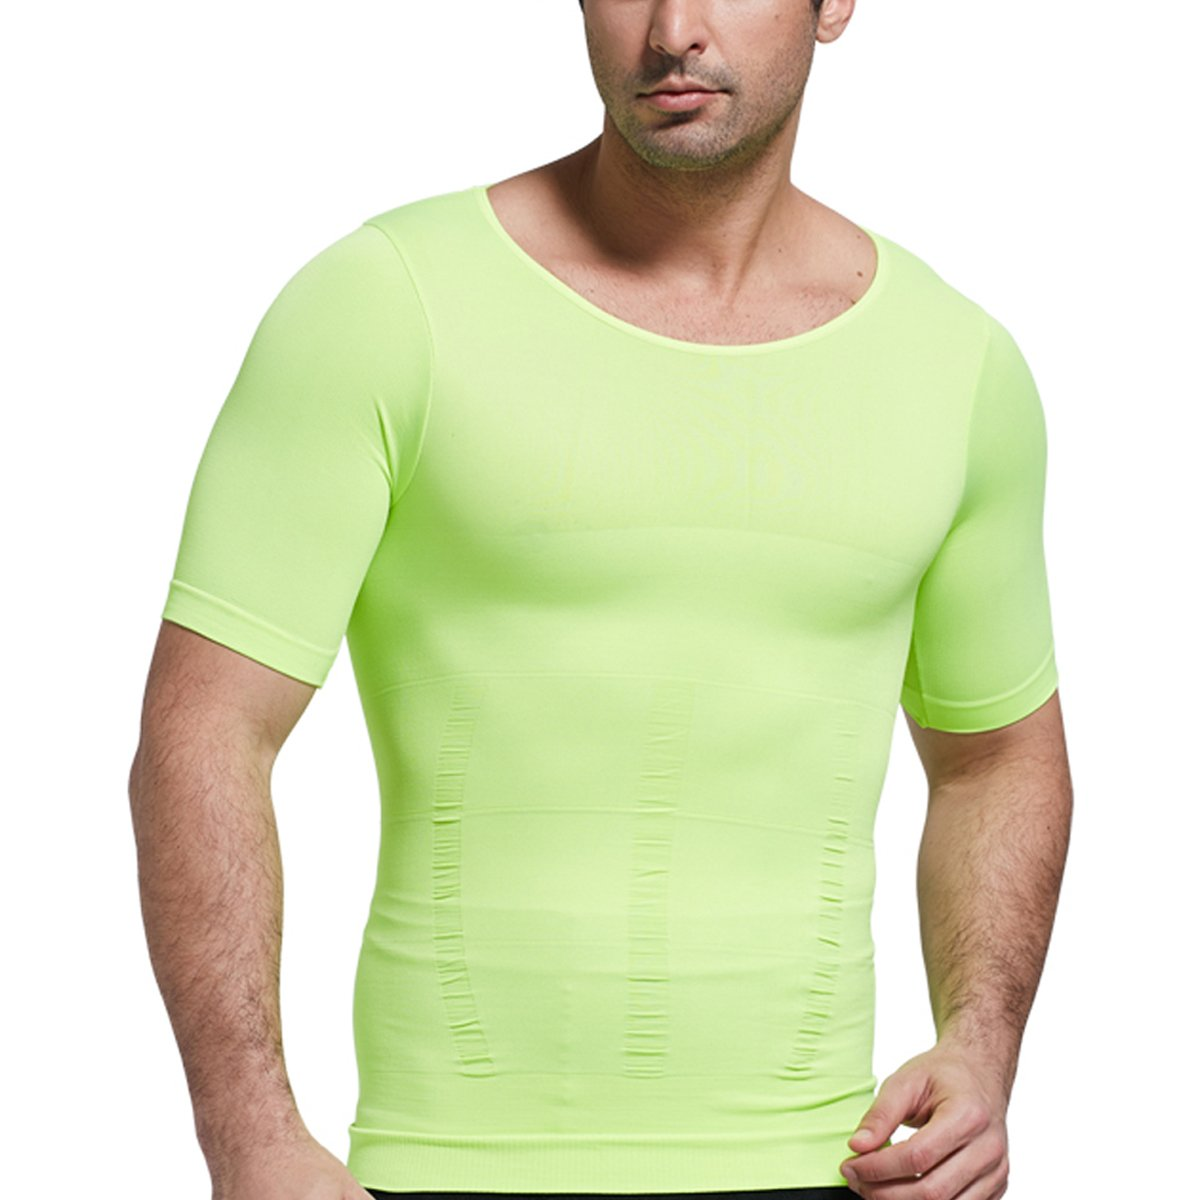 Mens Short Sleeve Shirts Slimming Vest Warm Instant Weight Loss Belly Fat Love Handles Remover Body Shaper Firms Abdomen Back Support Compression Fit